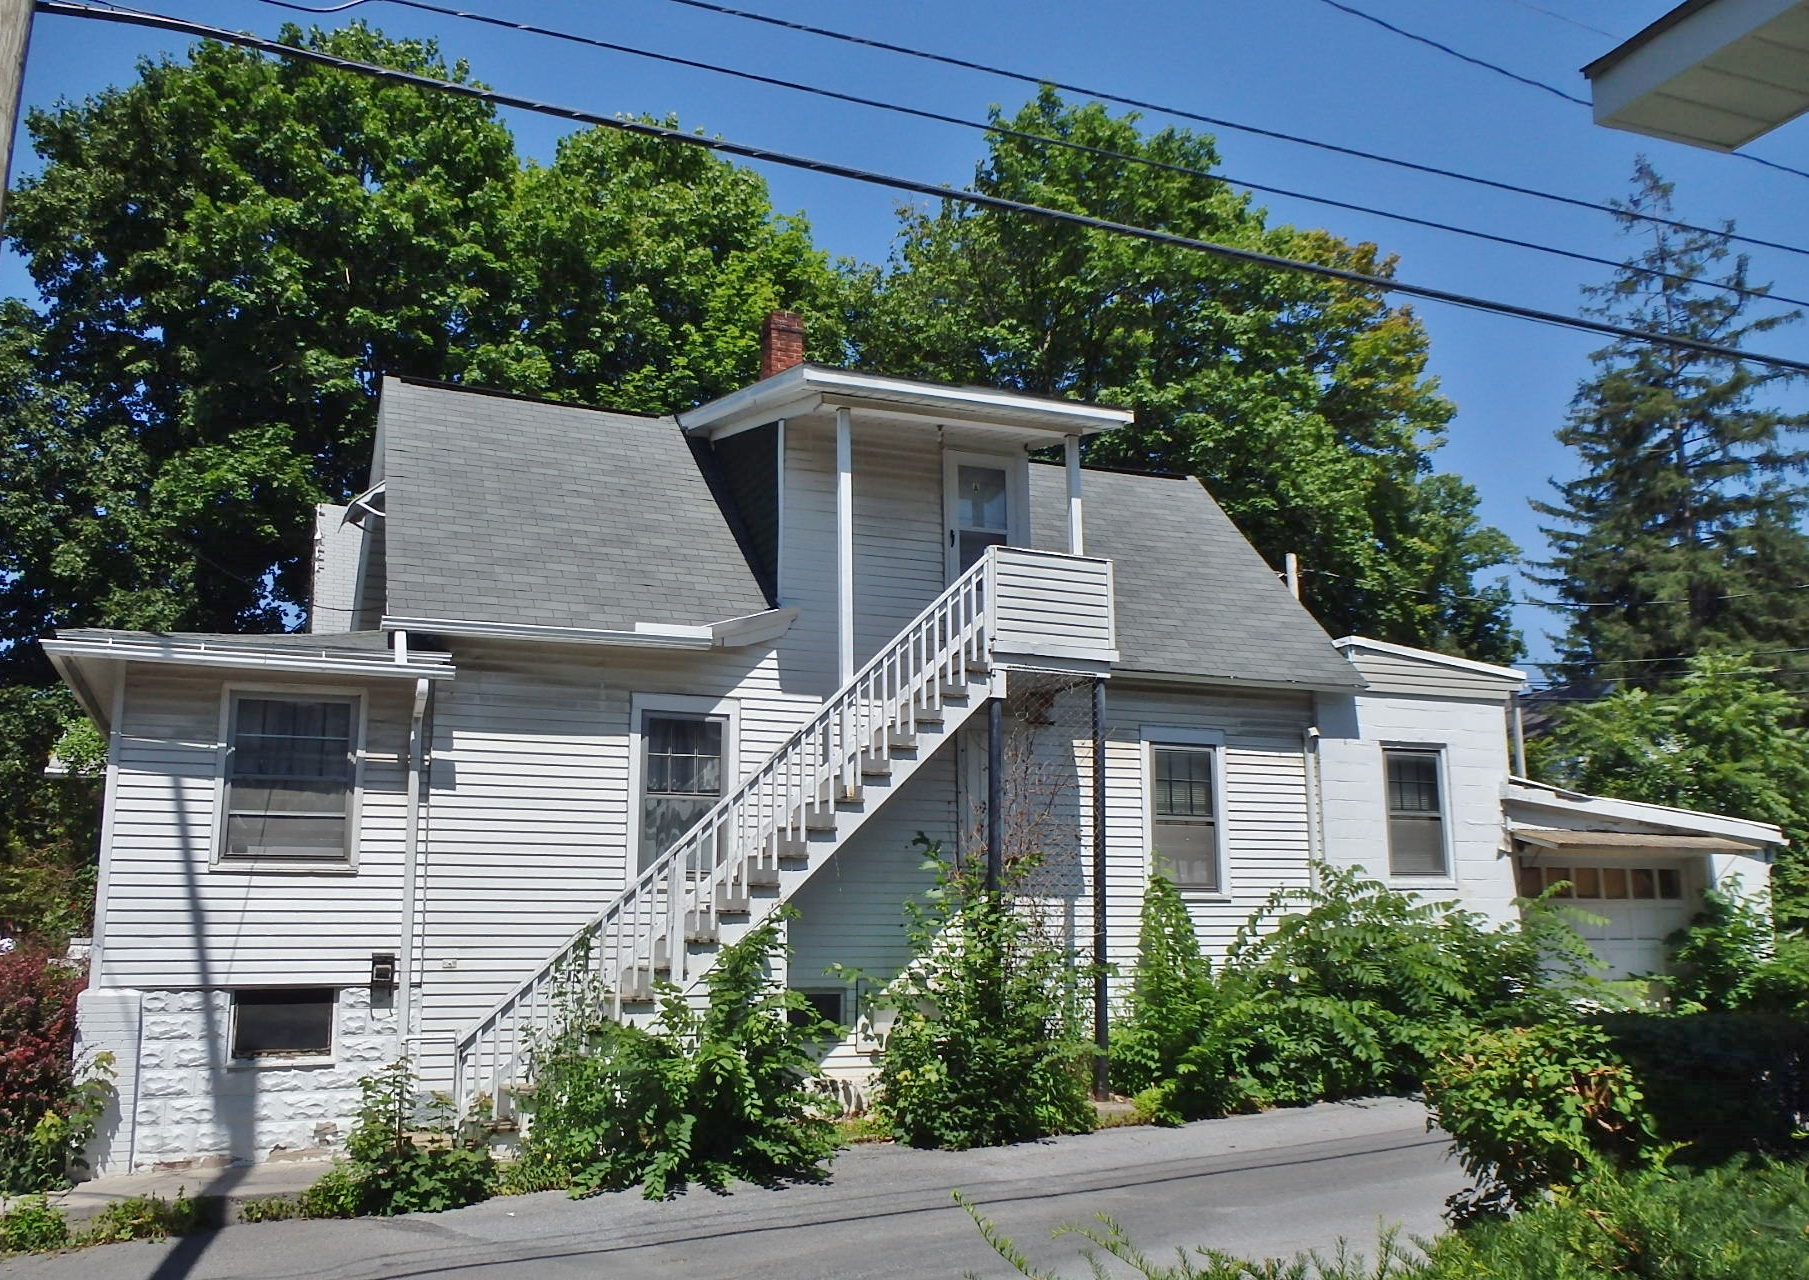 Photo of the 1-bedroom apartment for rent at 412-A W. Foster Avenue, State College PA.